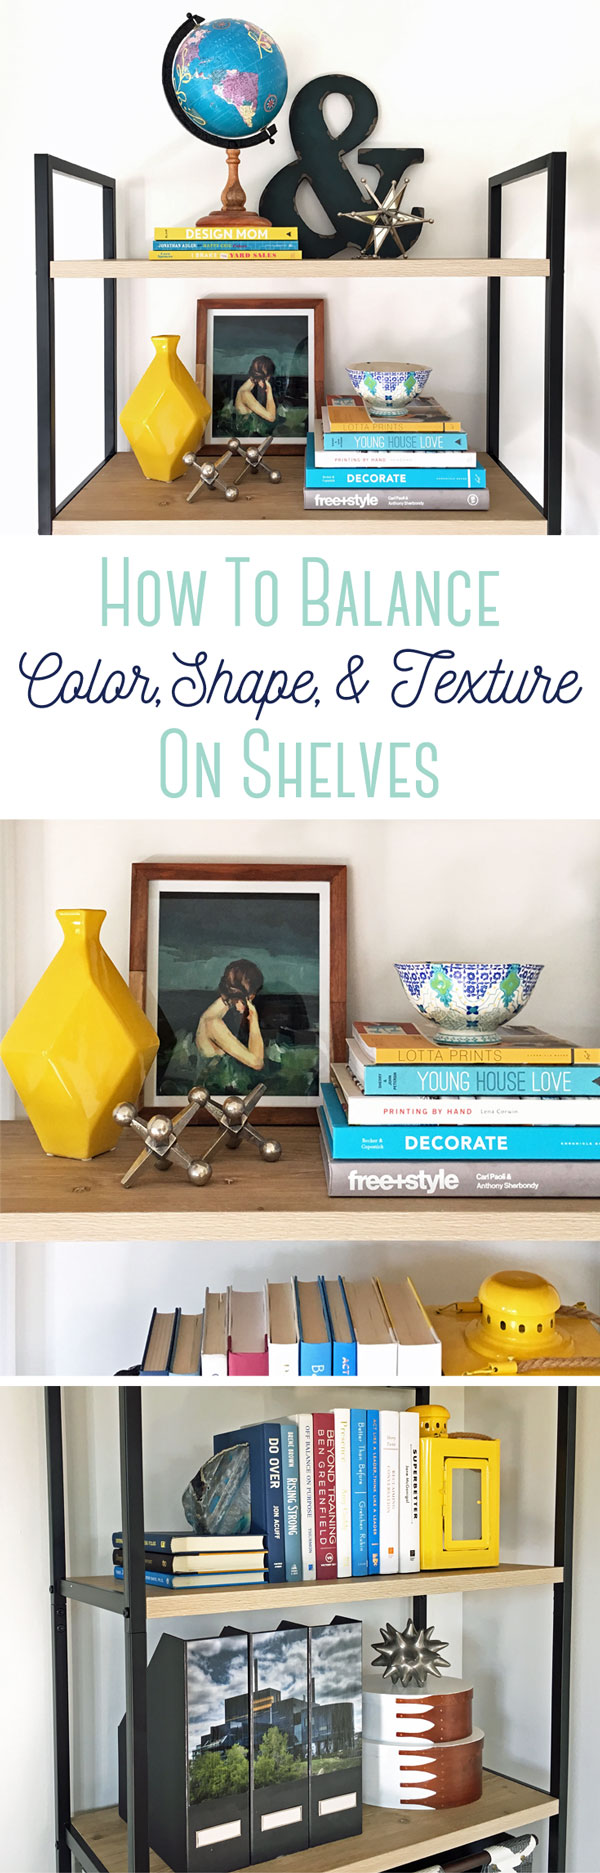 Love these tips for balancing color, shape, and texture in your decorating. Watch the video to see how she does it.